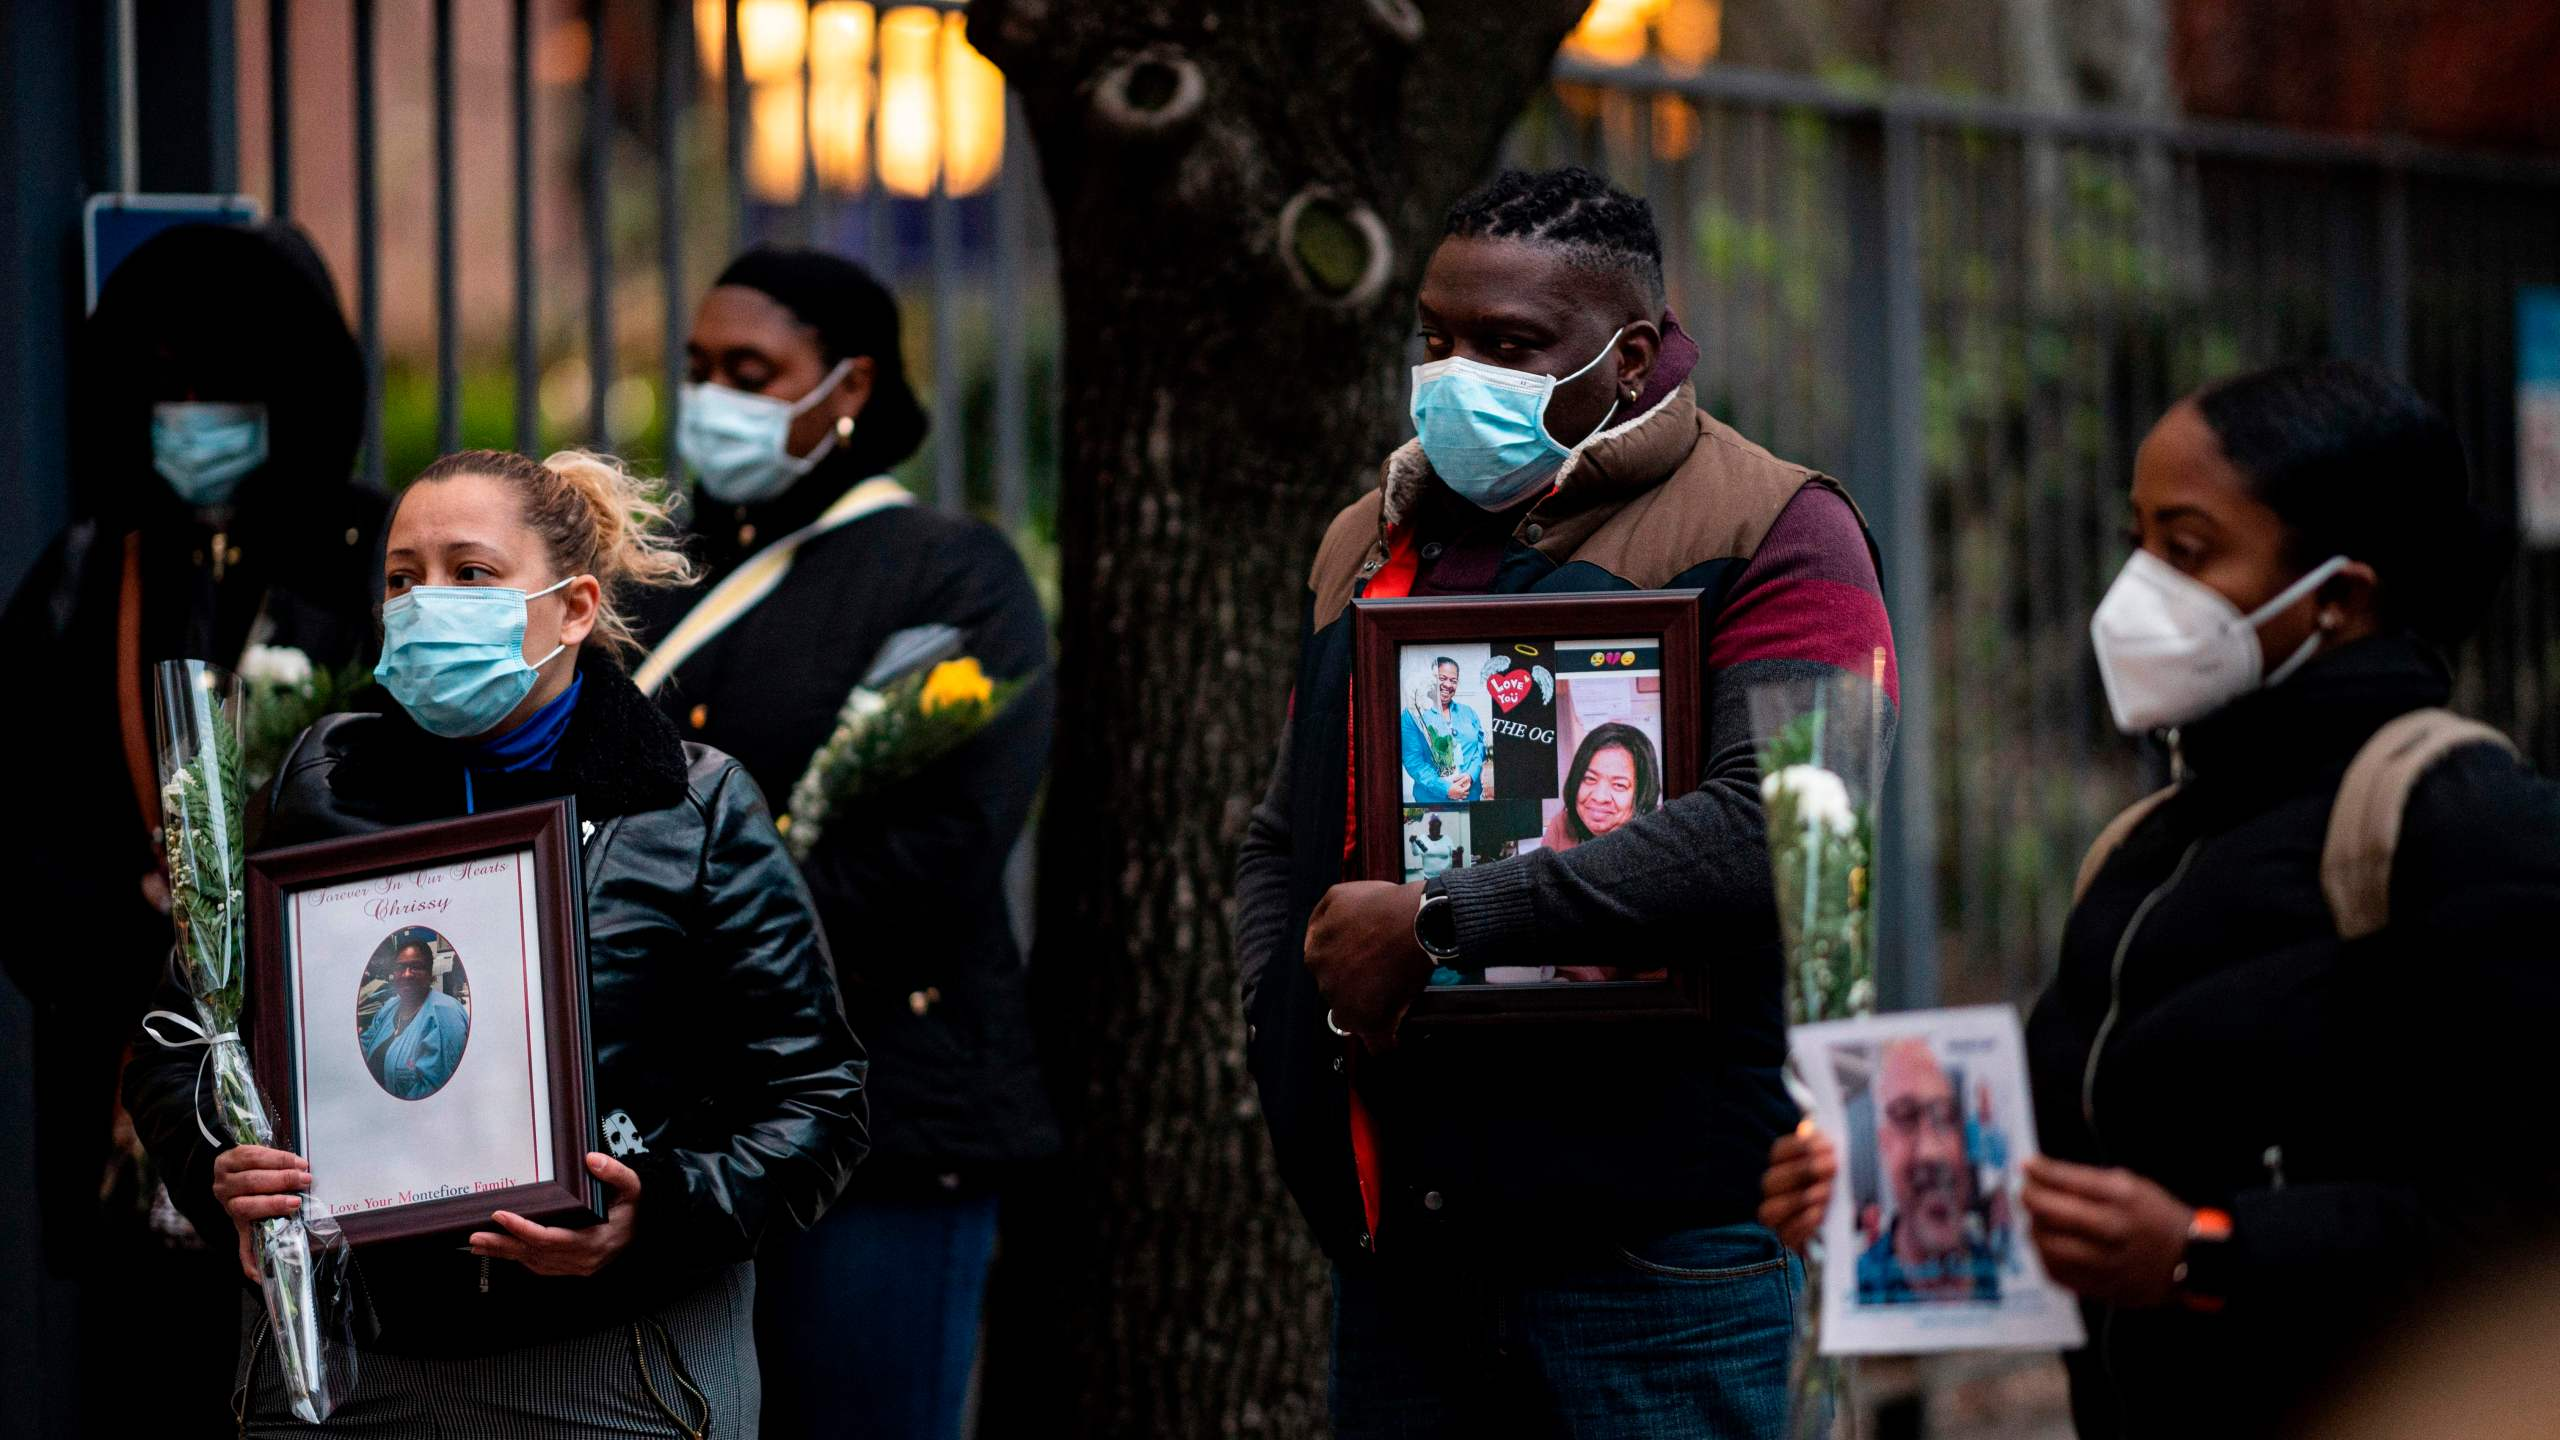 Nurses and health care workers mourn and remember their colleagues who died during the COVID-19 outbreak at a demonstration outside Mount Sinai Hospital in Manhattan on April 10, 2020 in New York City. (JOHANNES EISELE/AFP via Getty Images)